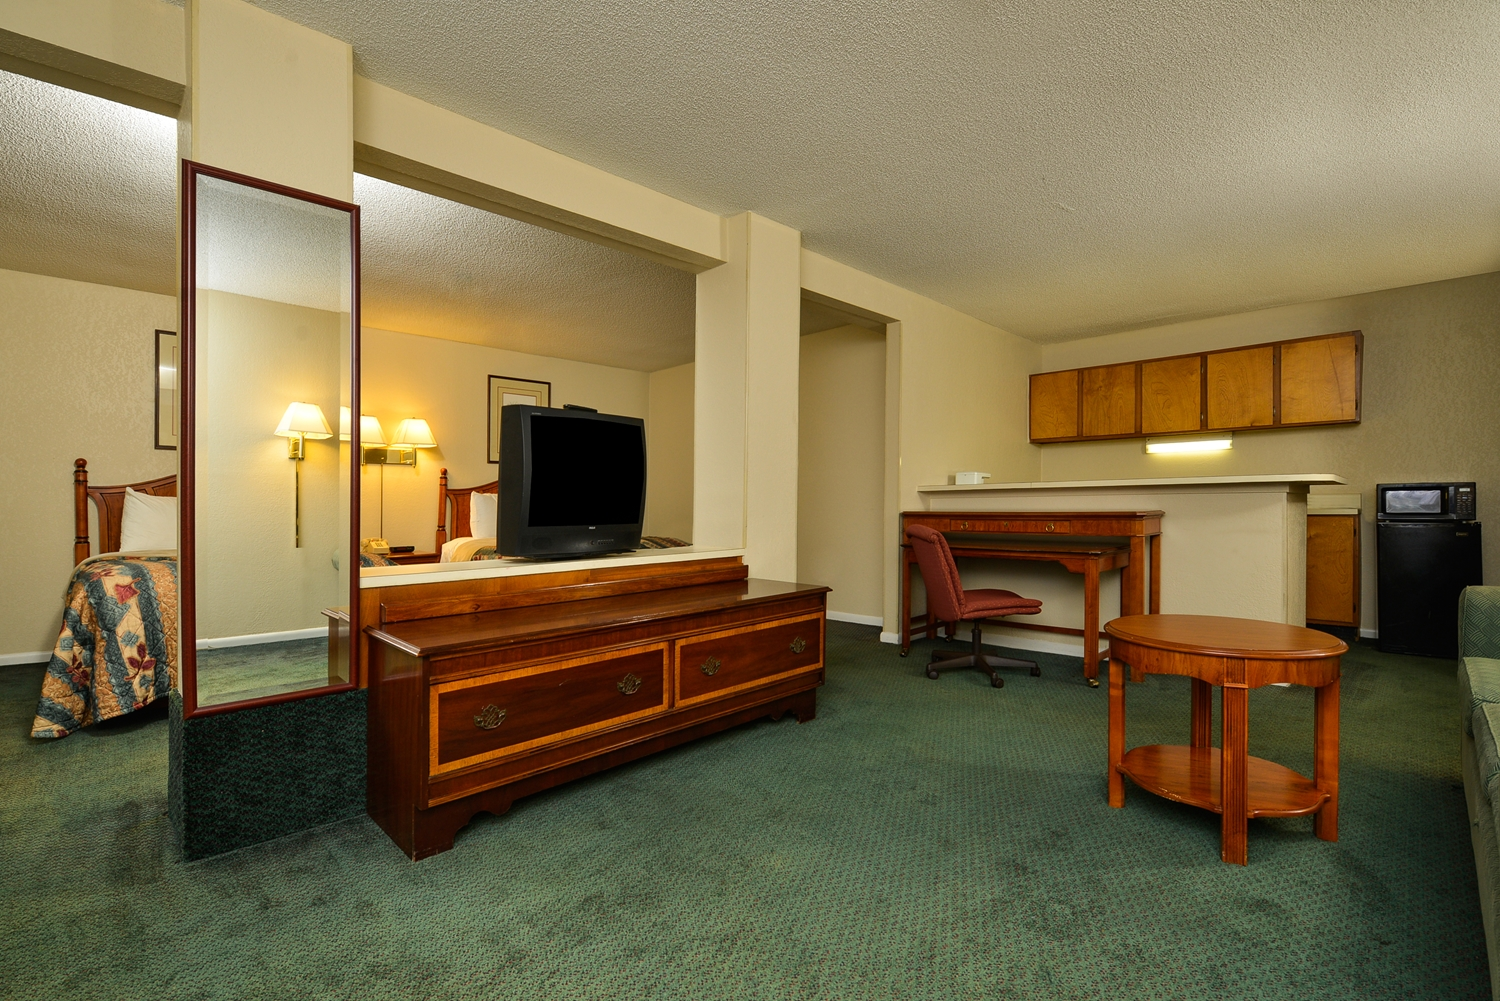 Americas Best Value Inn Winnsboro, SC - See Discounts